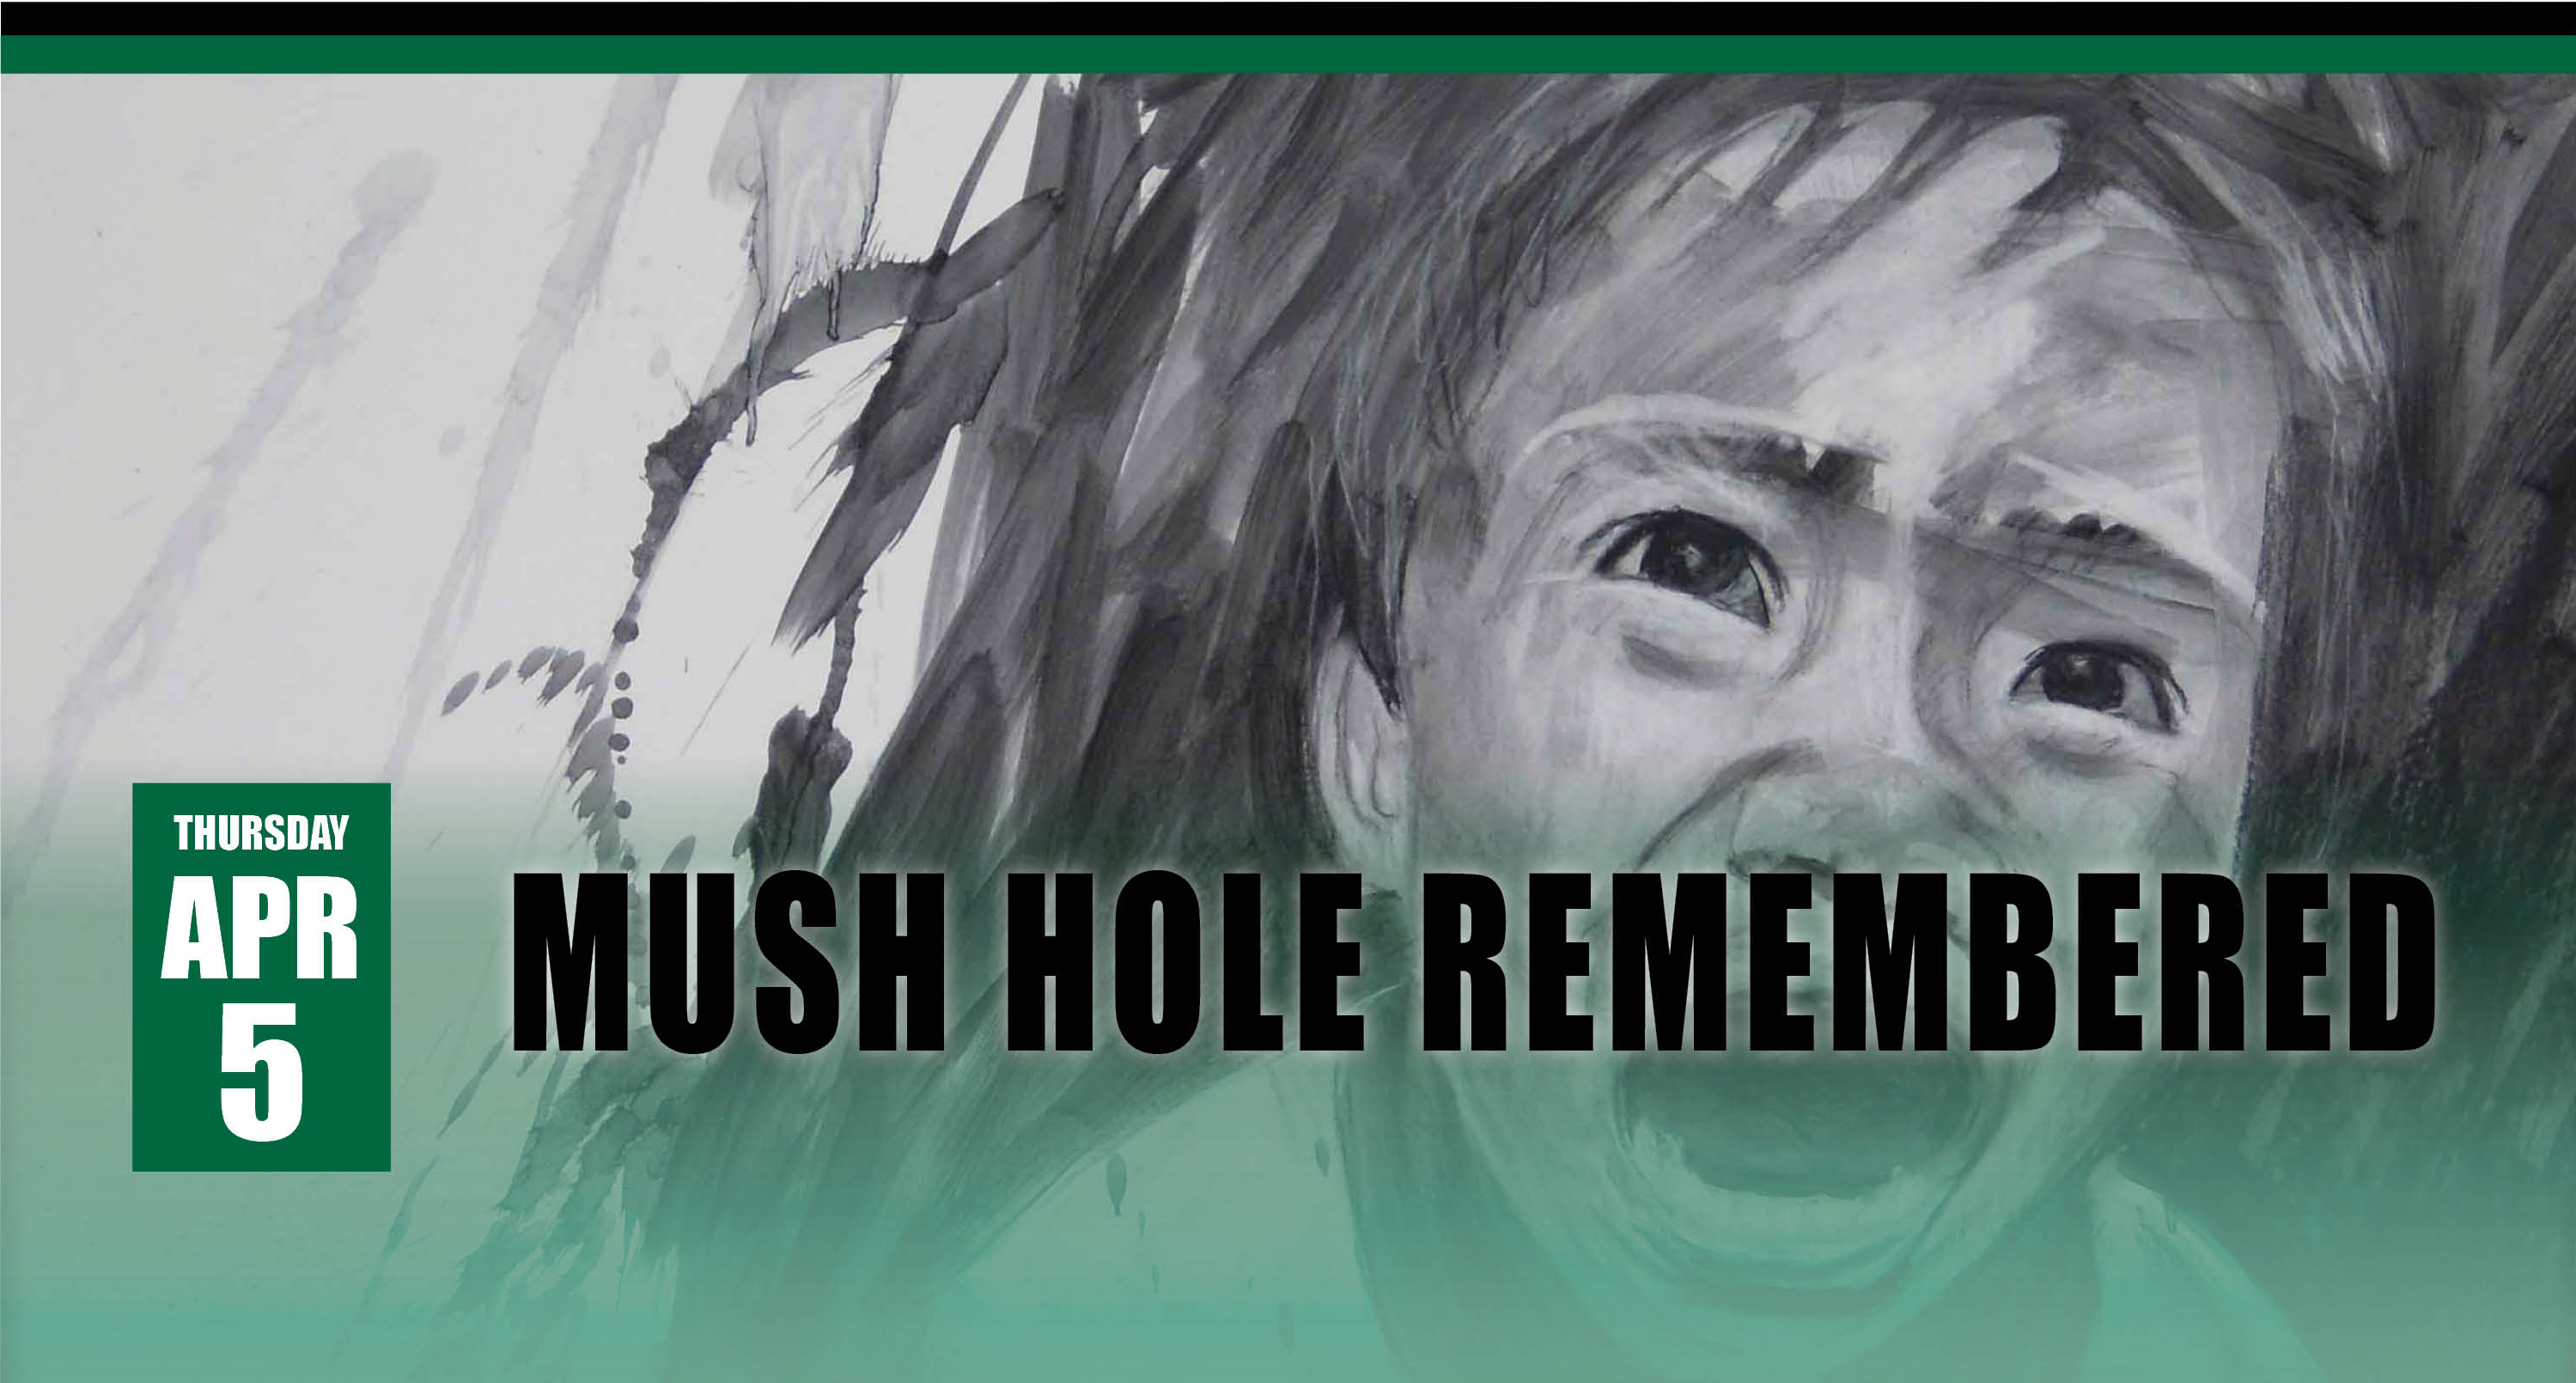 Mush Hole Remembered, Thursday, April 5, 2018